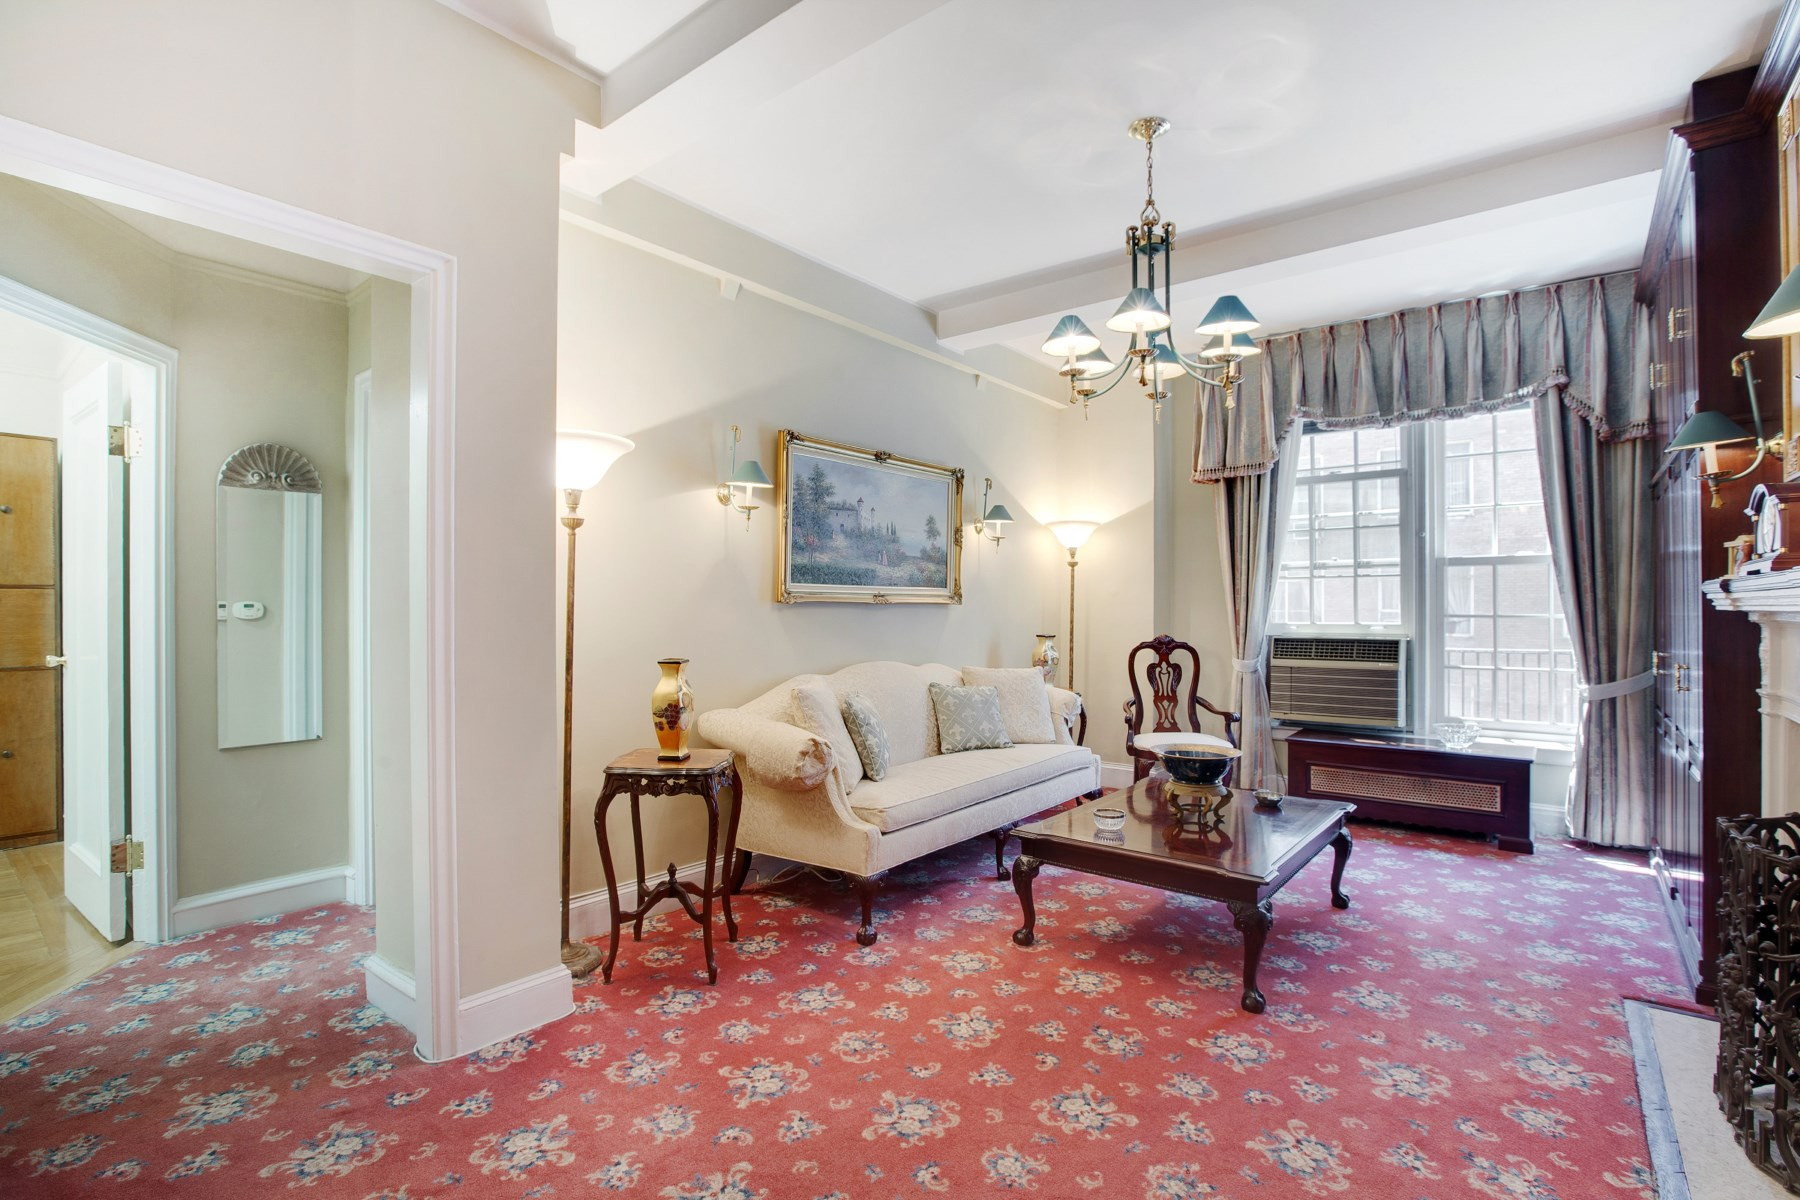 Co-op for Sale at 27 West 55th Street APT 62 Midtown West, New York, New York, 10019 United States